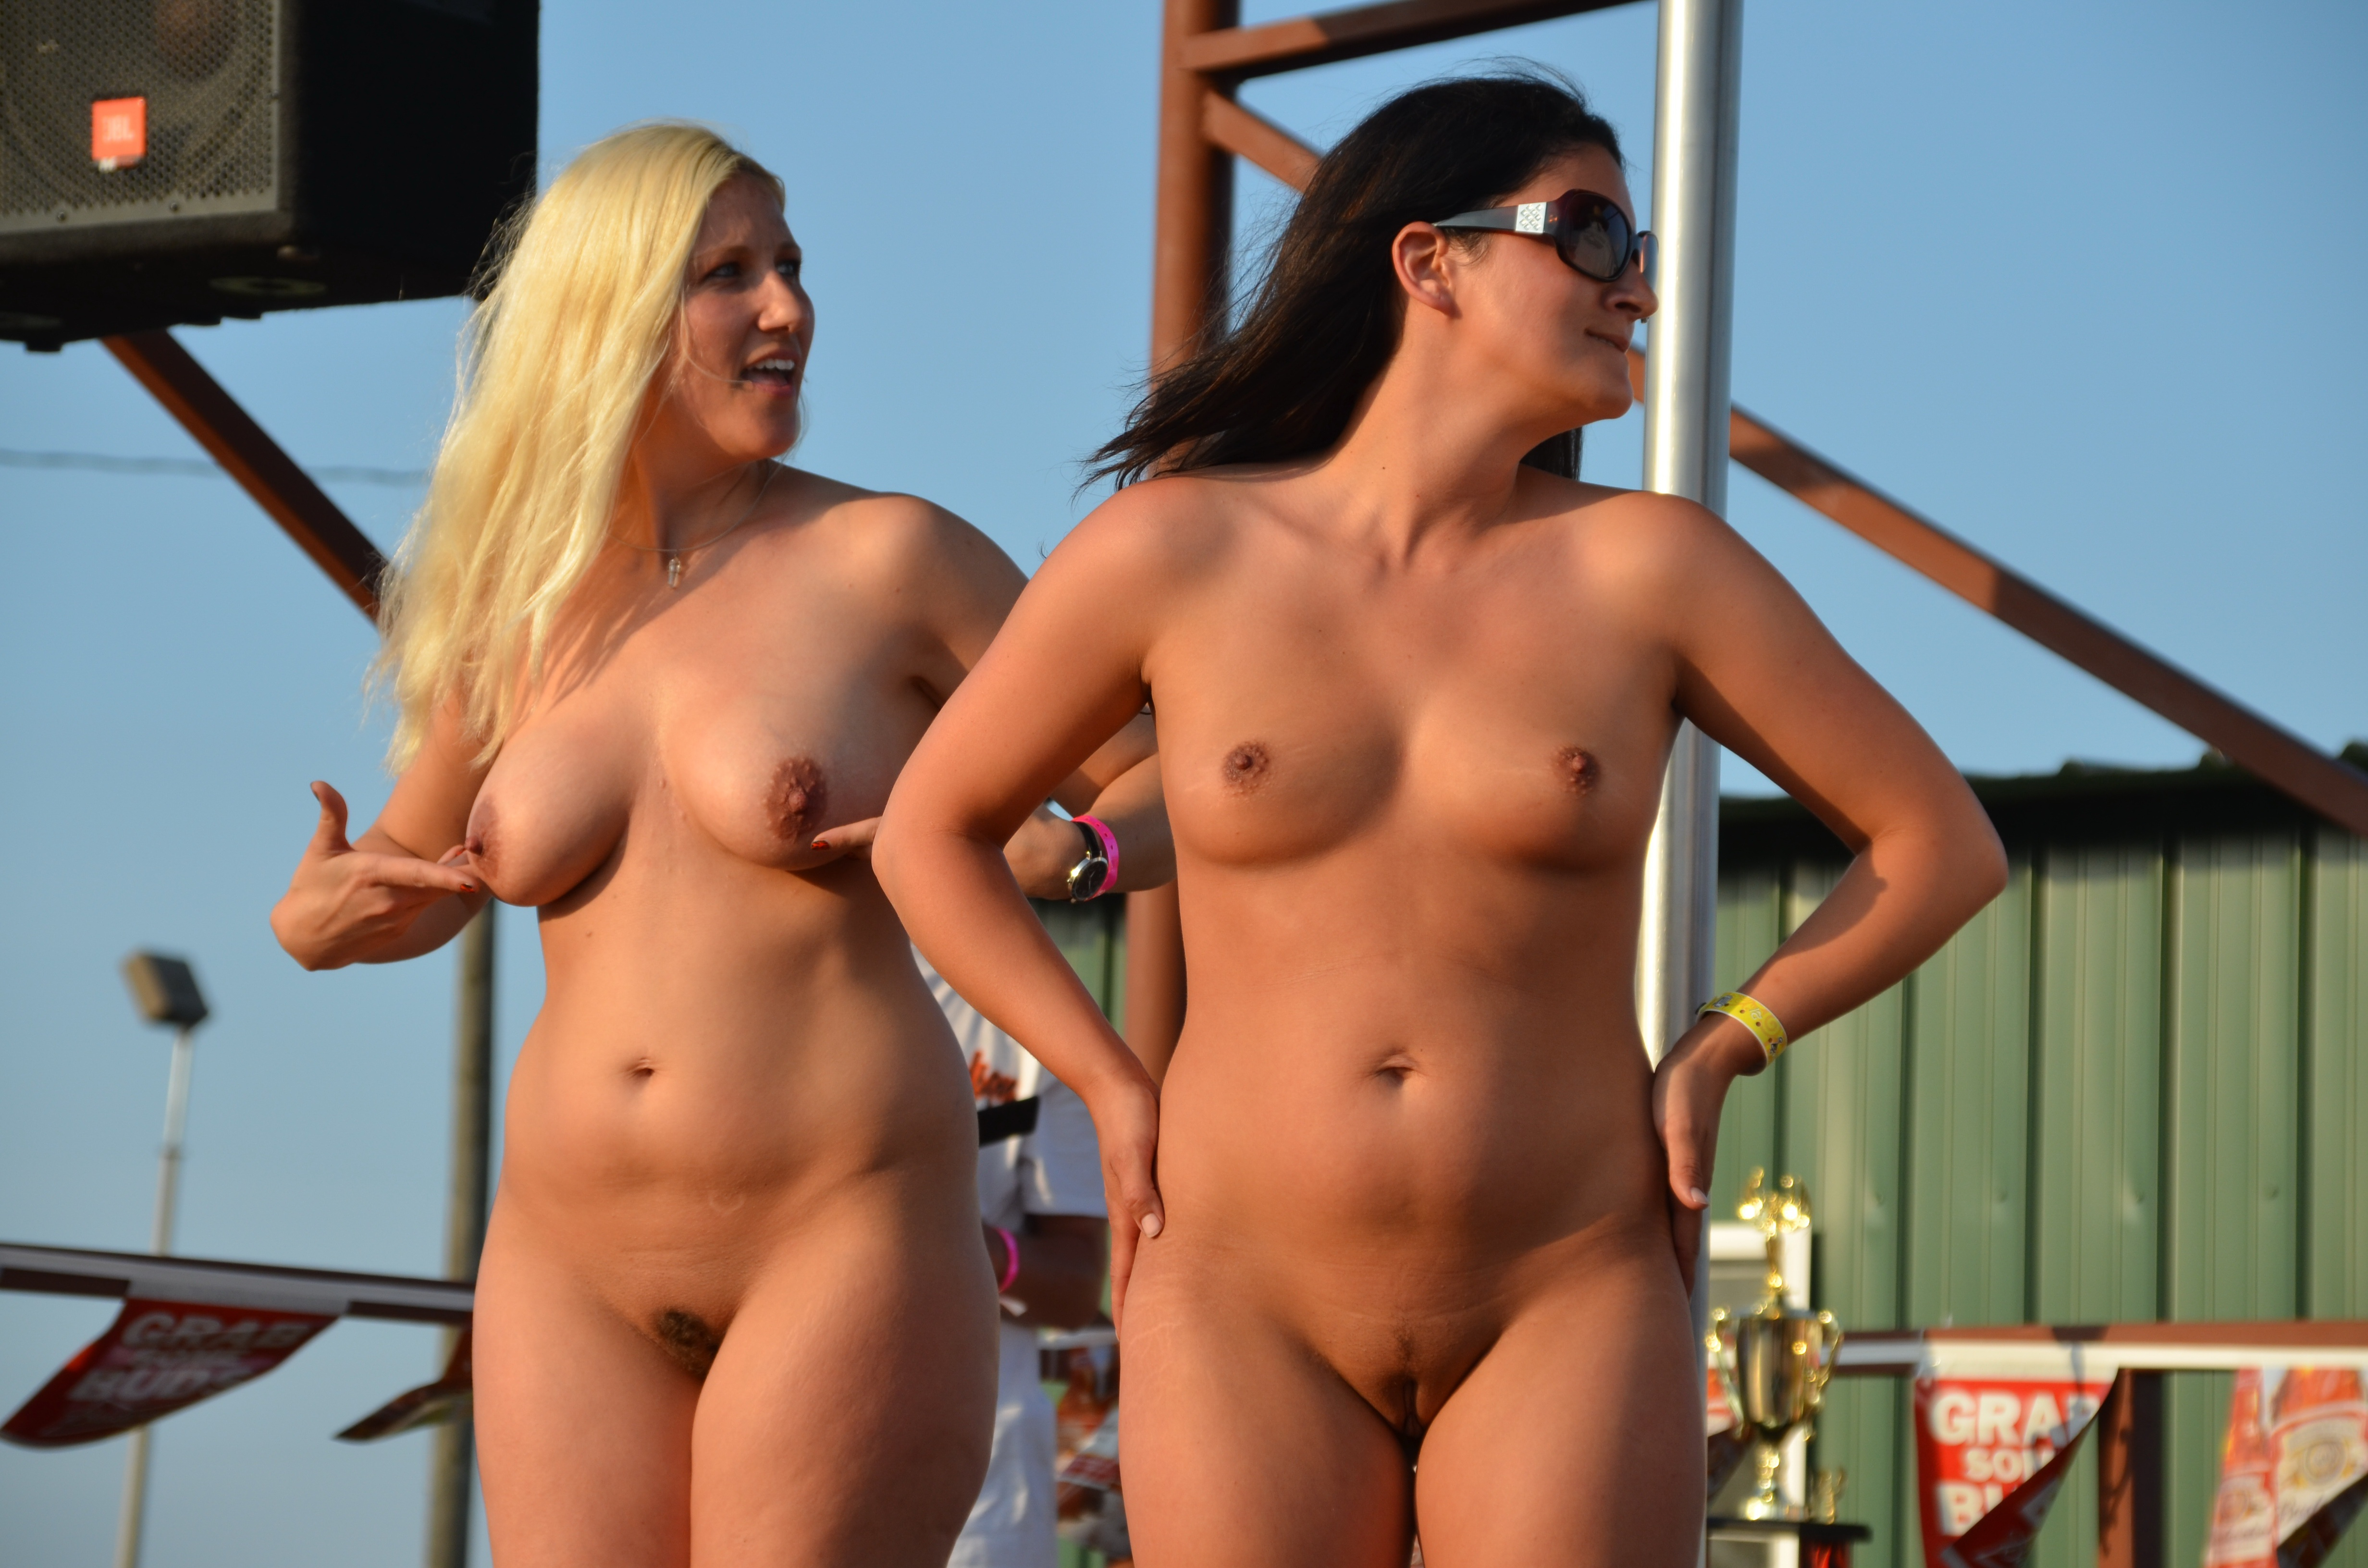 Motorcycle rally nude pictures excellent